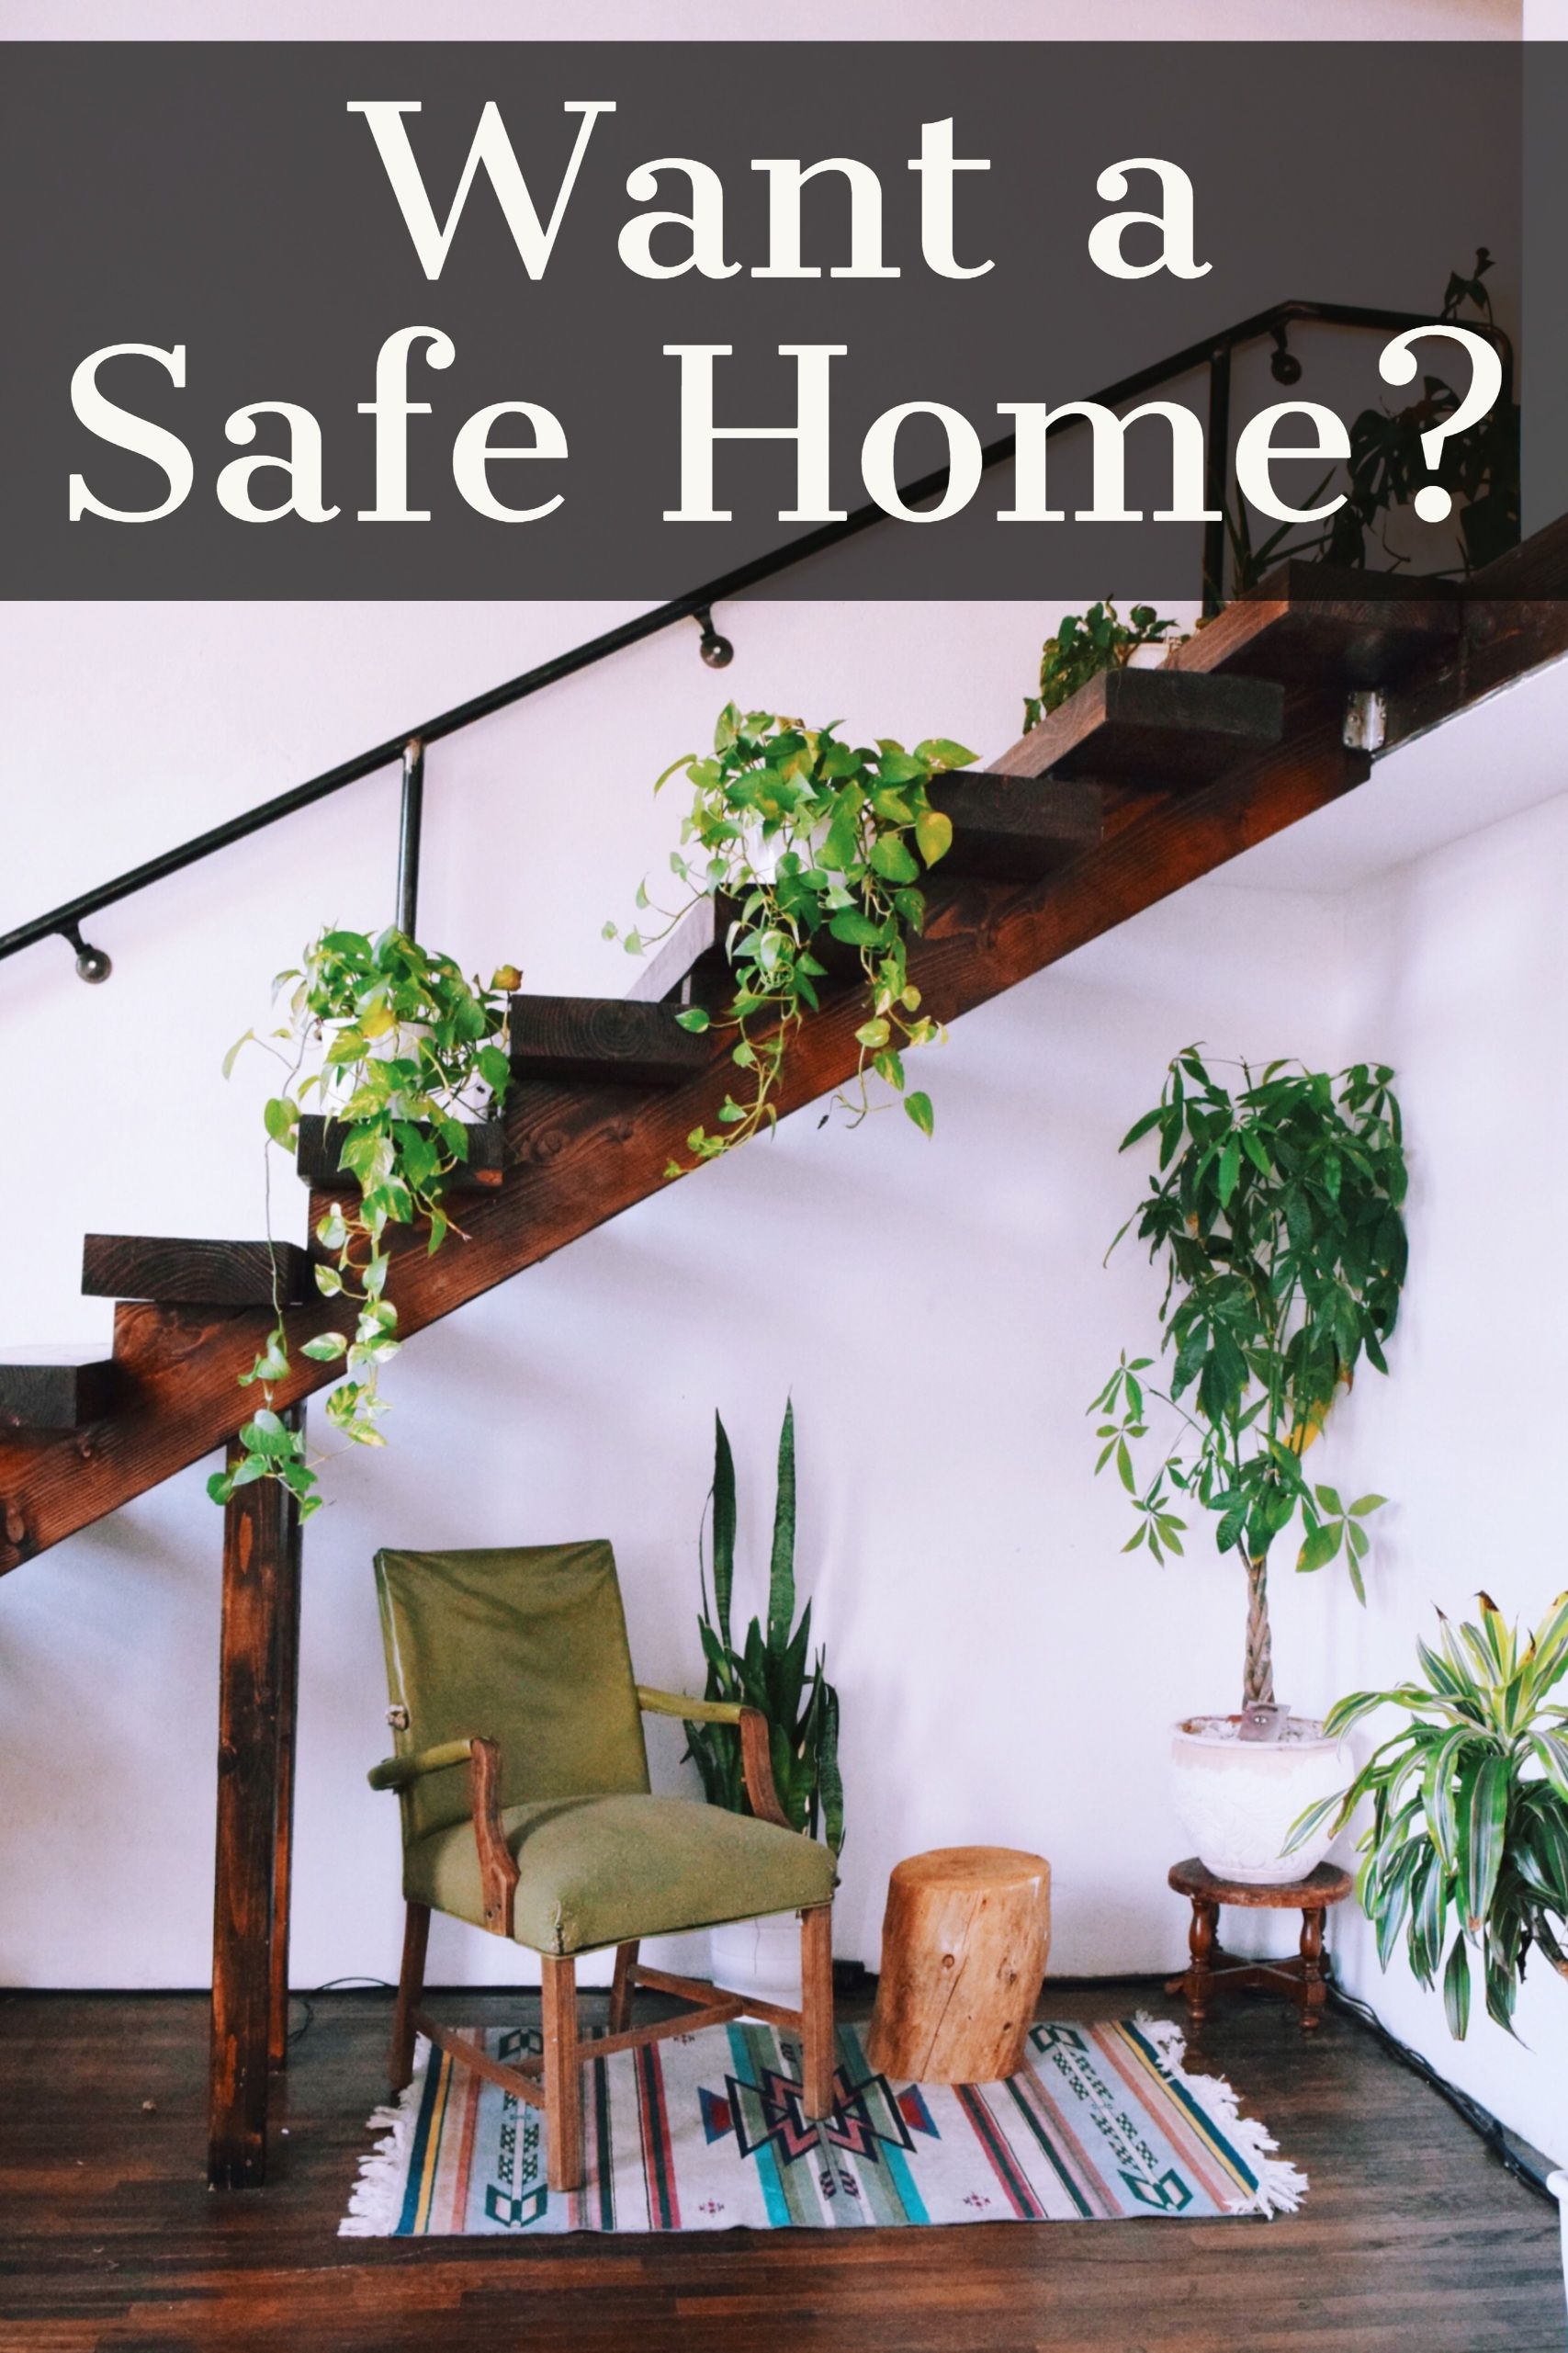 The 5 Senses of the Home That Keep You Safe and Sound